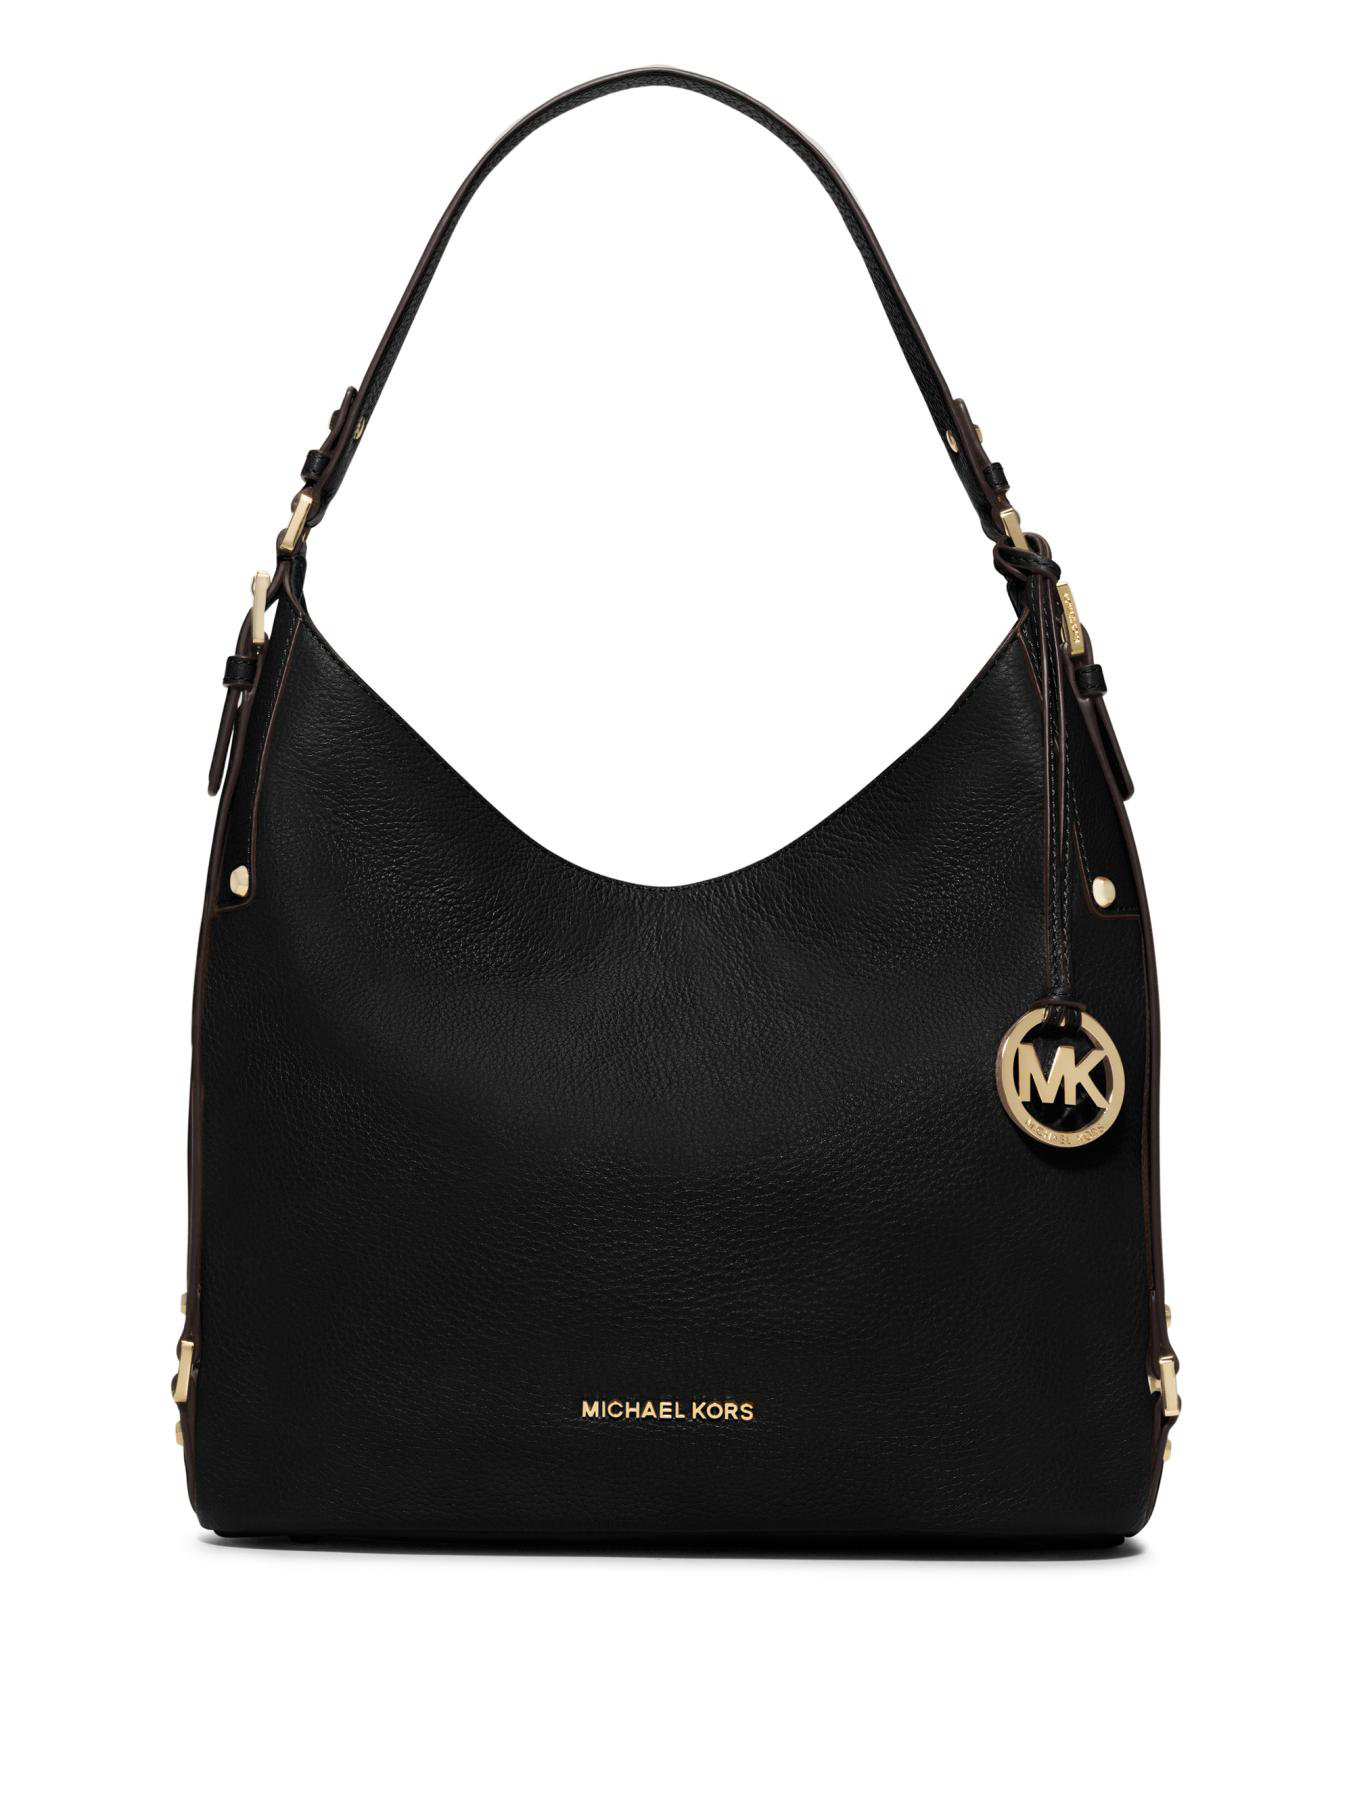 michael michael kors bedford belted large leather hobo bag in black lyst. Black Bedroom Furniture Sets. Home Design Ideas